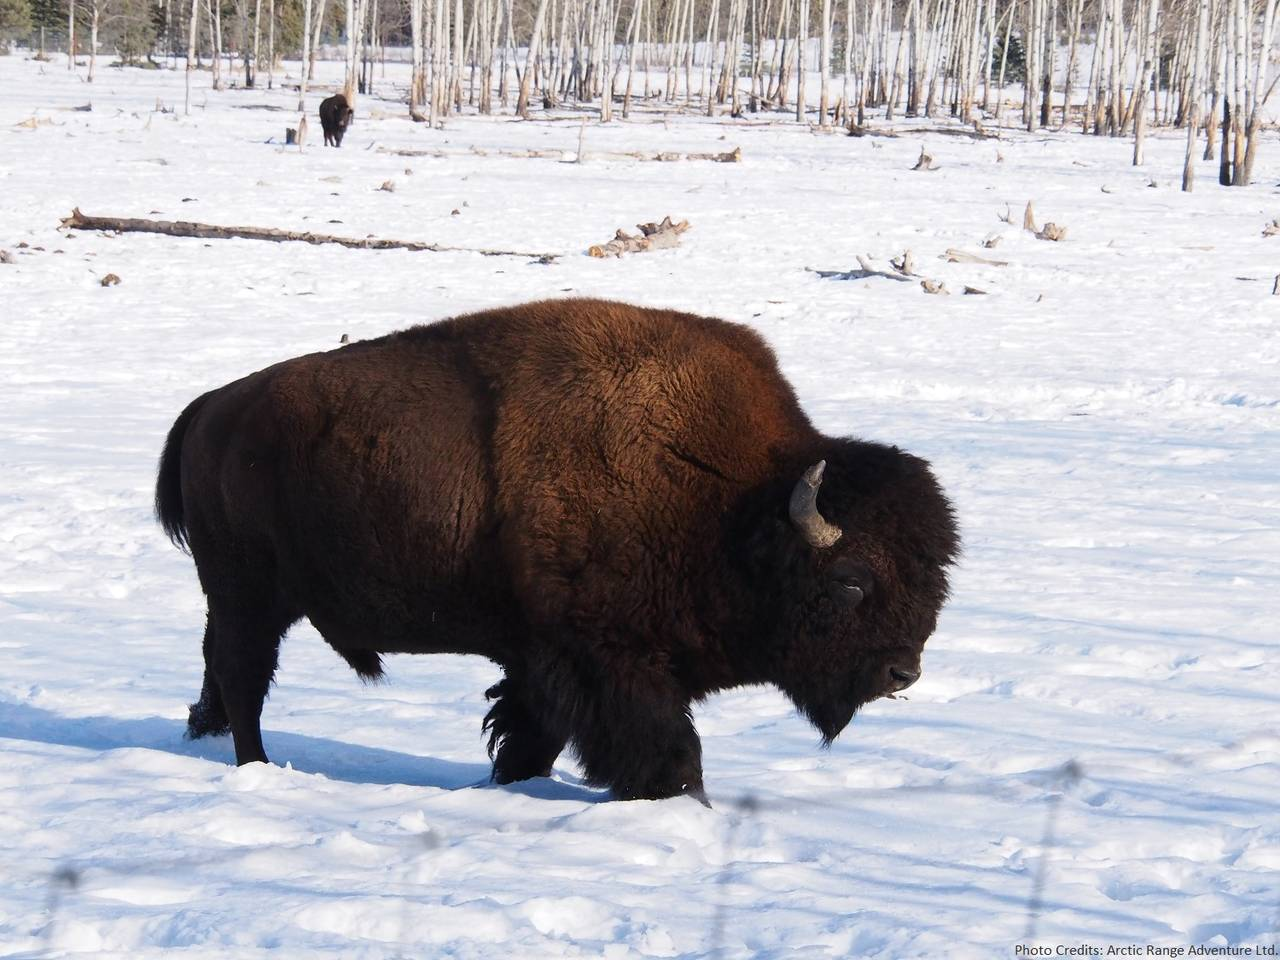 Bison of the Yukon